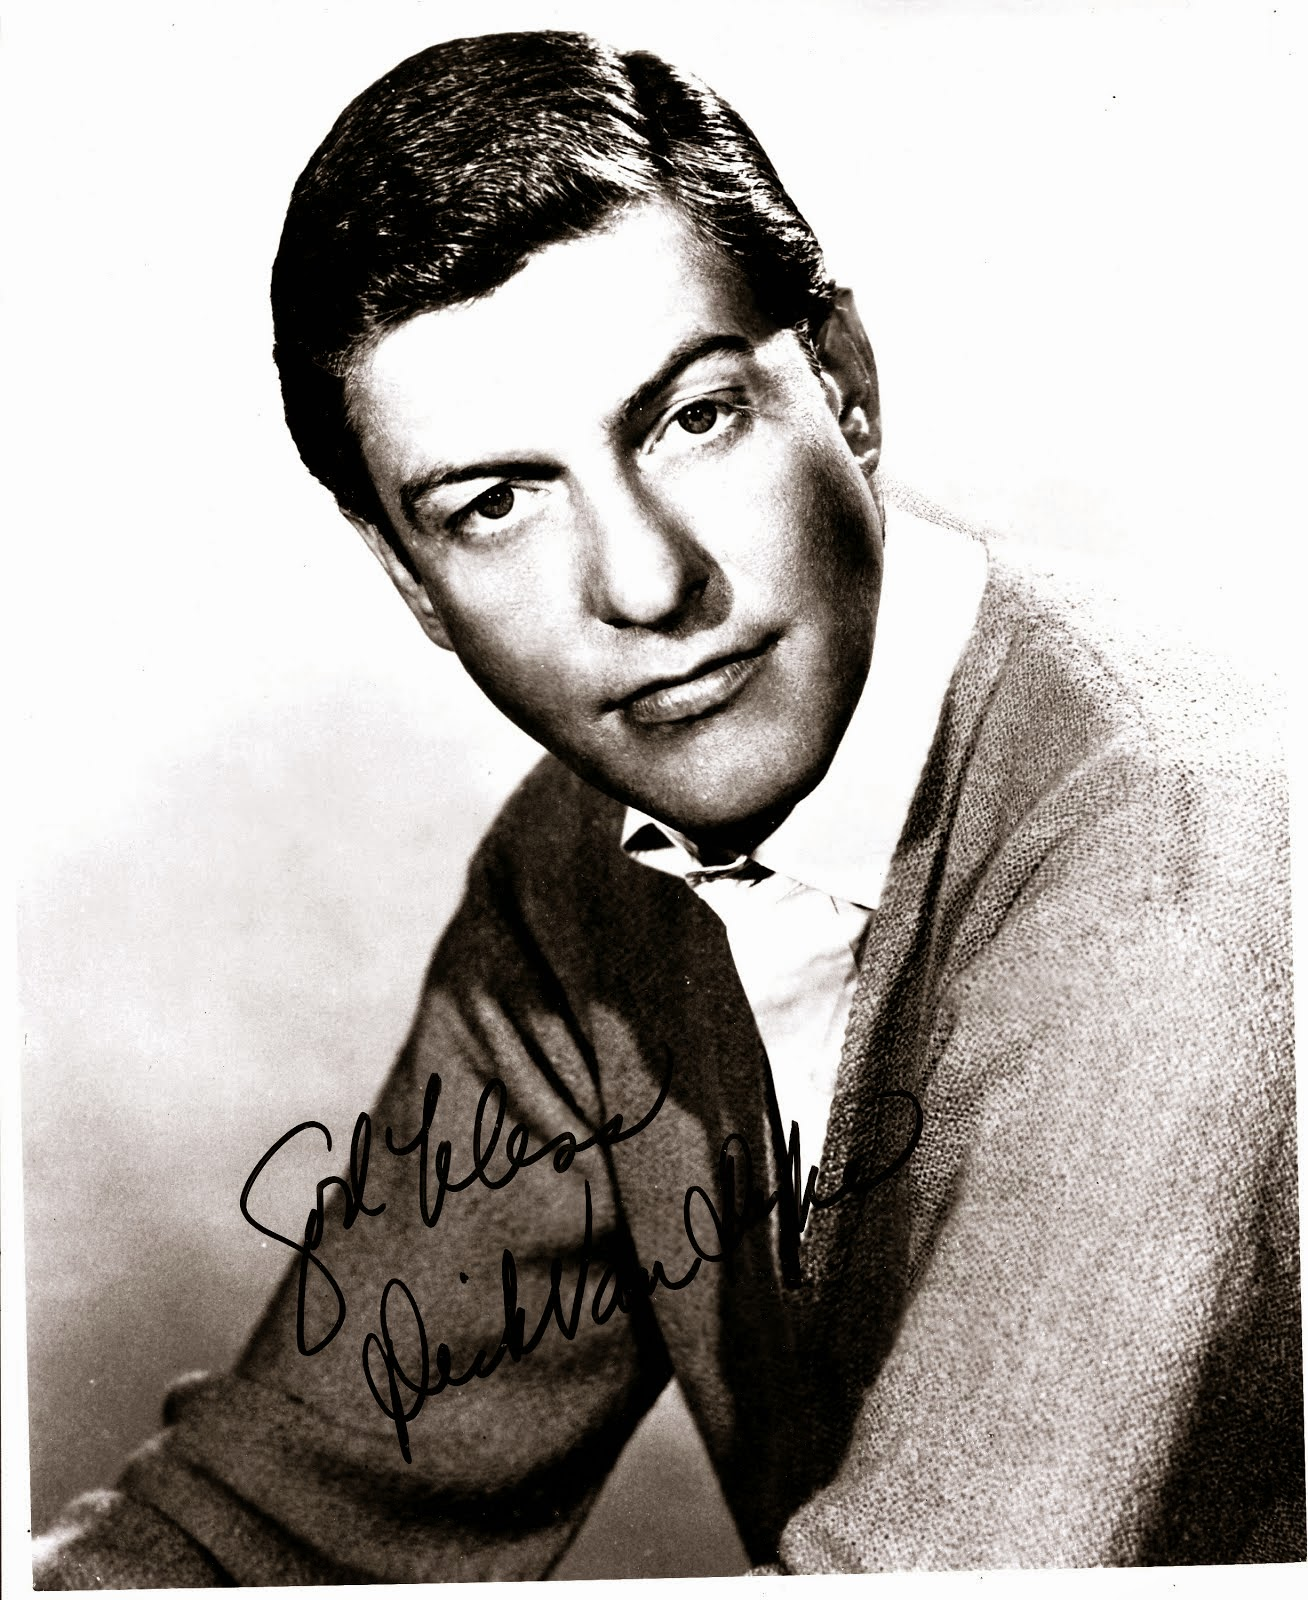 Legendary Dick Van Dyke auto. 8x10 photo $35.00 FREE ship